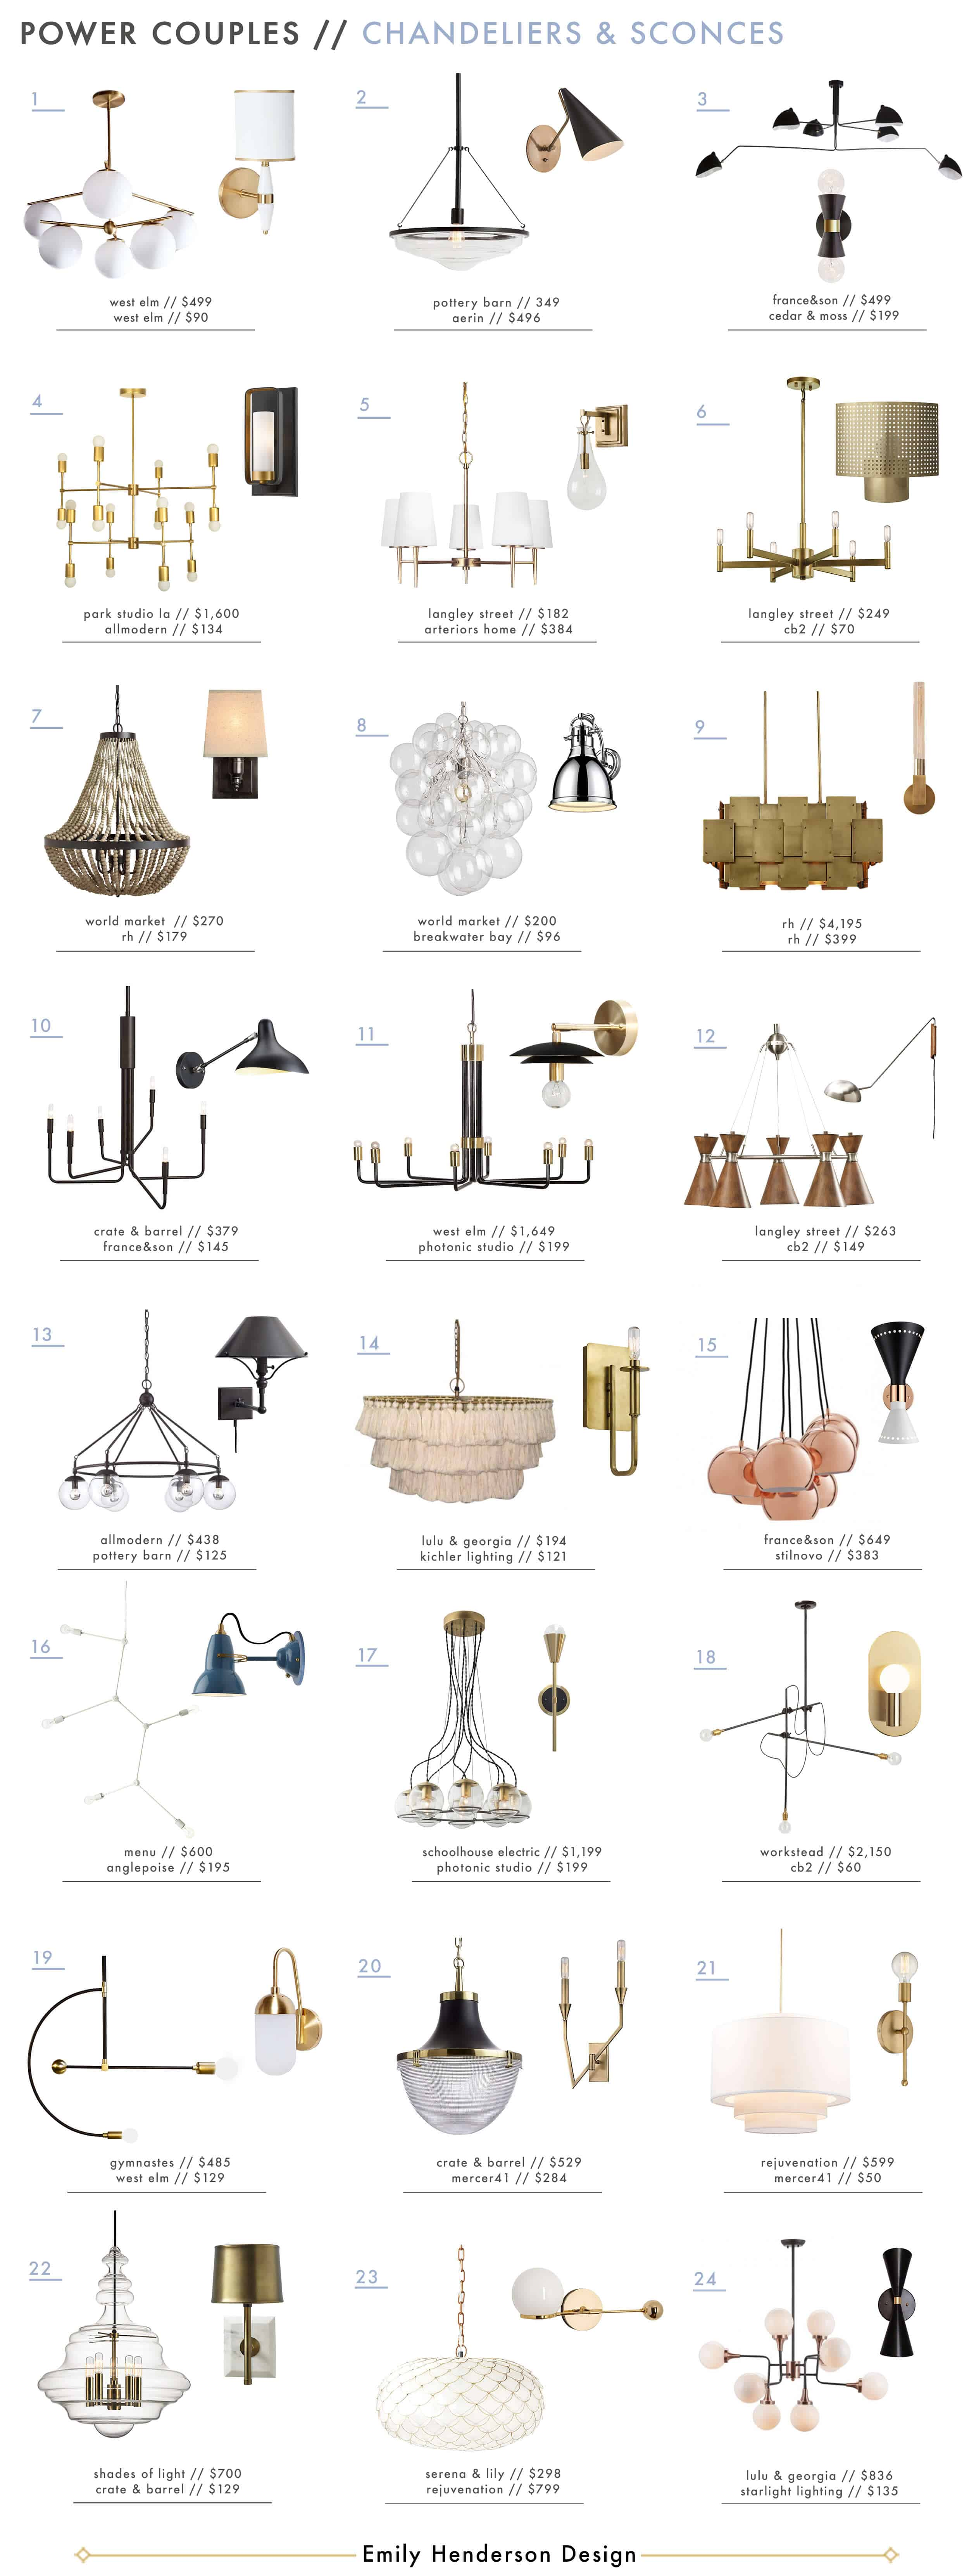 Emily Henderson_Power Couples_Chandelier_Sconce_Lighting_Pairs_Roundup